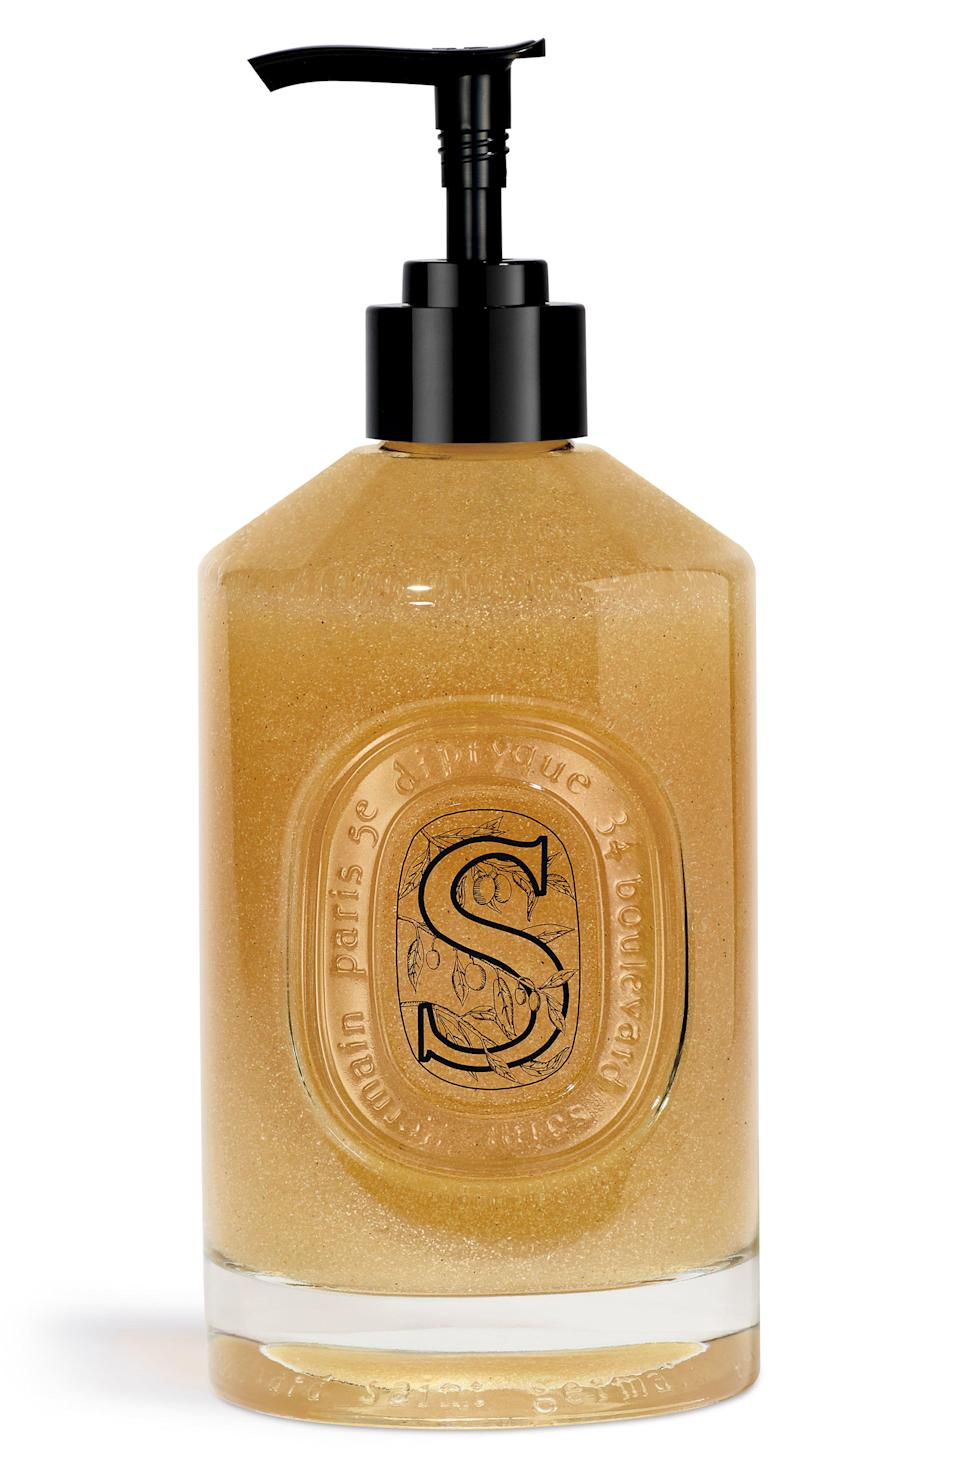 """<p><strong>DIPTYQUE Exfoliating Hand Wash</strong></p><p>nordstrom.com</p><p><strong>$62.00</strong></p><p><a href=""""https://go.redirectingat.com?id=74968X1596630&url=https%3A%2F%2Fwww.nordstrom.com%2Fs%2Fdiptyque-exfoliating-hand-wash%2F5718577&sref=https%3A%2F%2Fwww.elle.com%2Fbeauty%2Fmakeup-skin-care%2Fg13968711%2Fbest-hand-soap%2F"""" rel=""""nofollow noopener"""" target=""""_blank"""" data-ylk=""""slk:Shop Now"""" class=""""link rapid-noclick-resp"""">Shop Now</a></p><p>When iconic French fragrance brand Diptyque first debuted their hand care collection, I couldn't stop thinking about how impressive chic the glass vessels next to any sink. Even better, it lived up to the hype. The soothing soap smells totally transporting and is made with lavender and rosemary floral waters to purify, and honey makes it so there's no hand cream needed post-wash. </p>"""